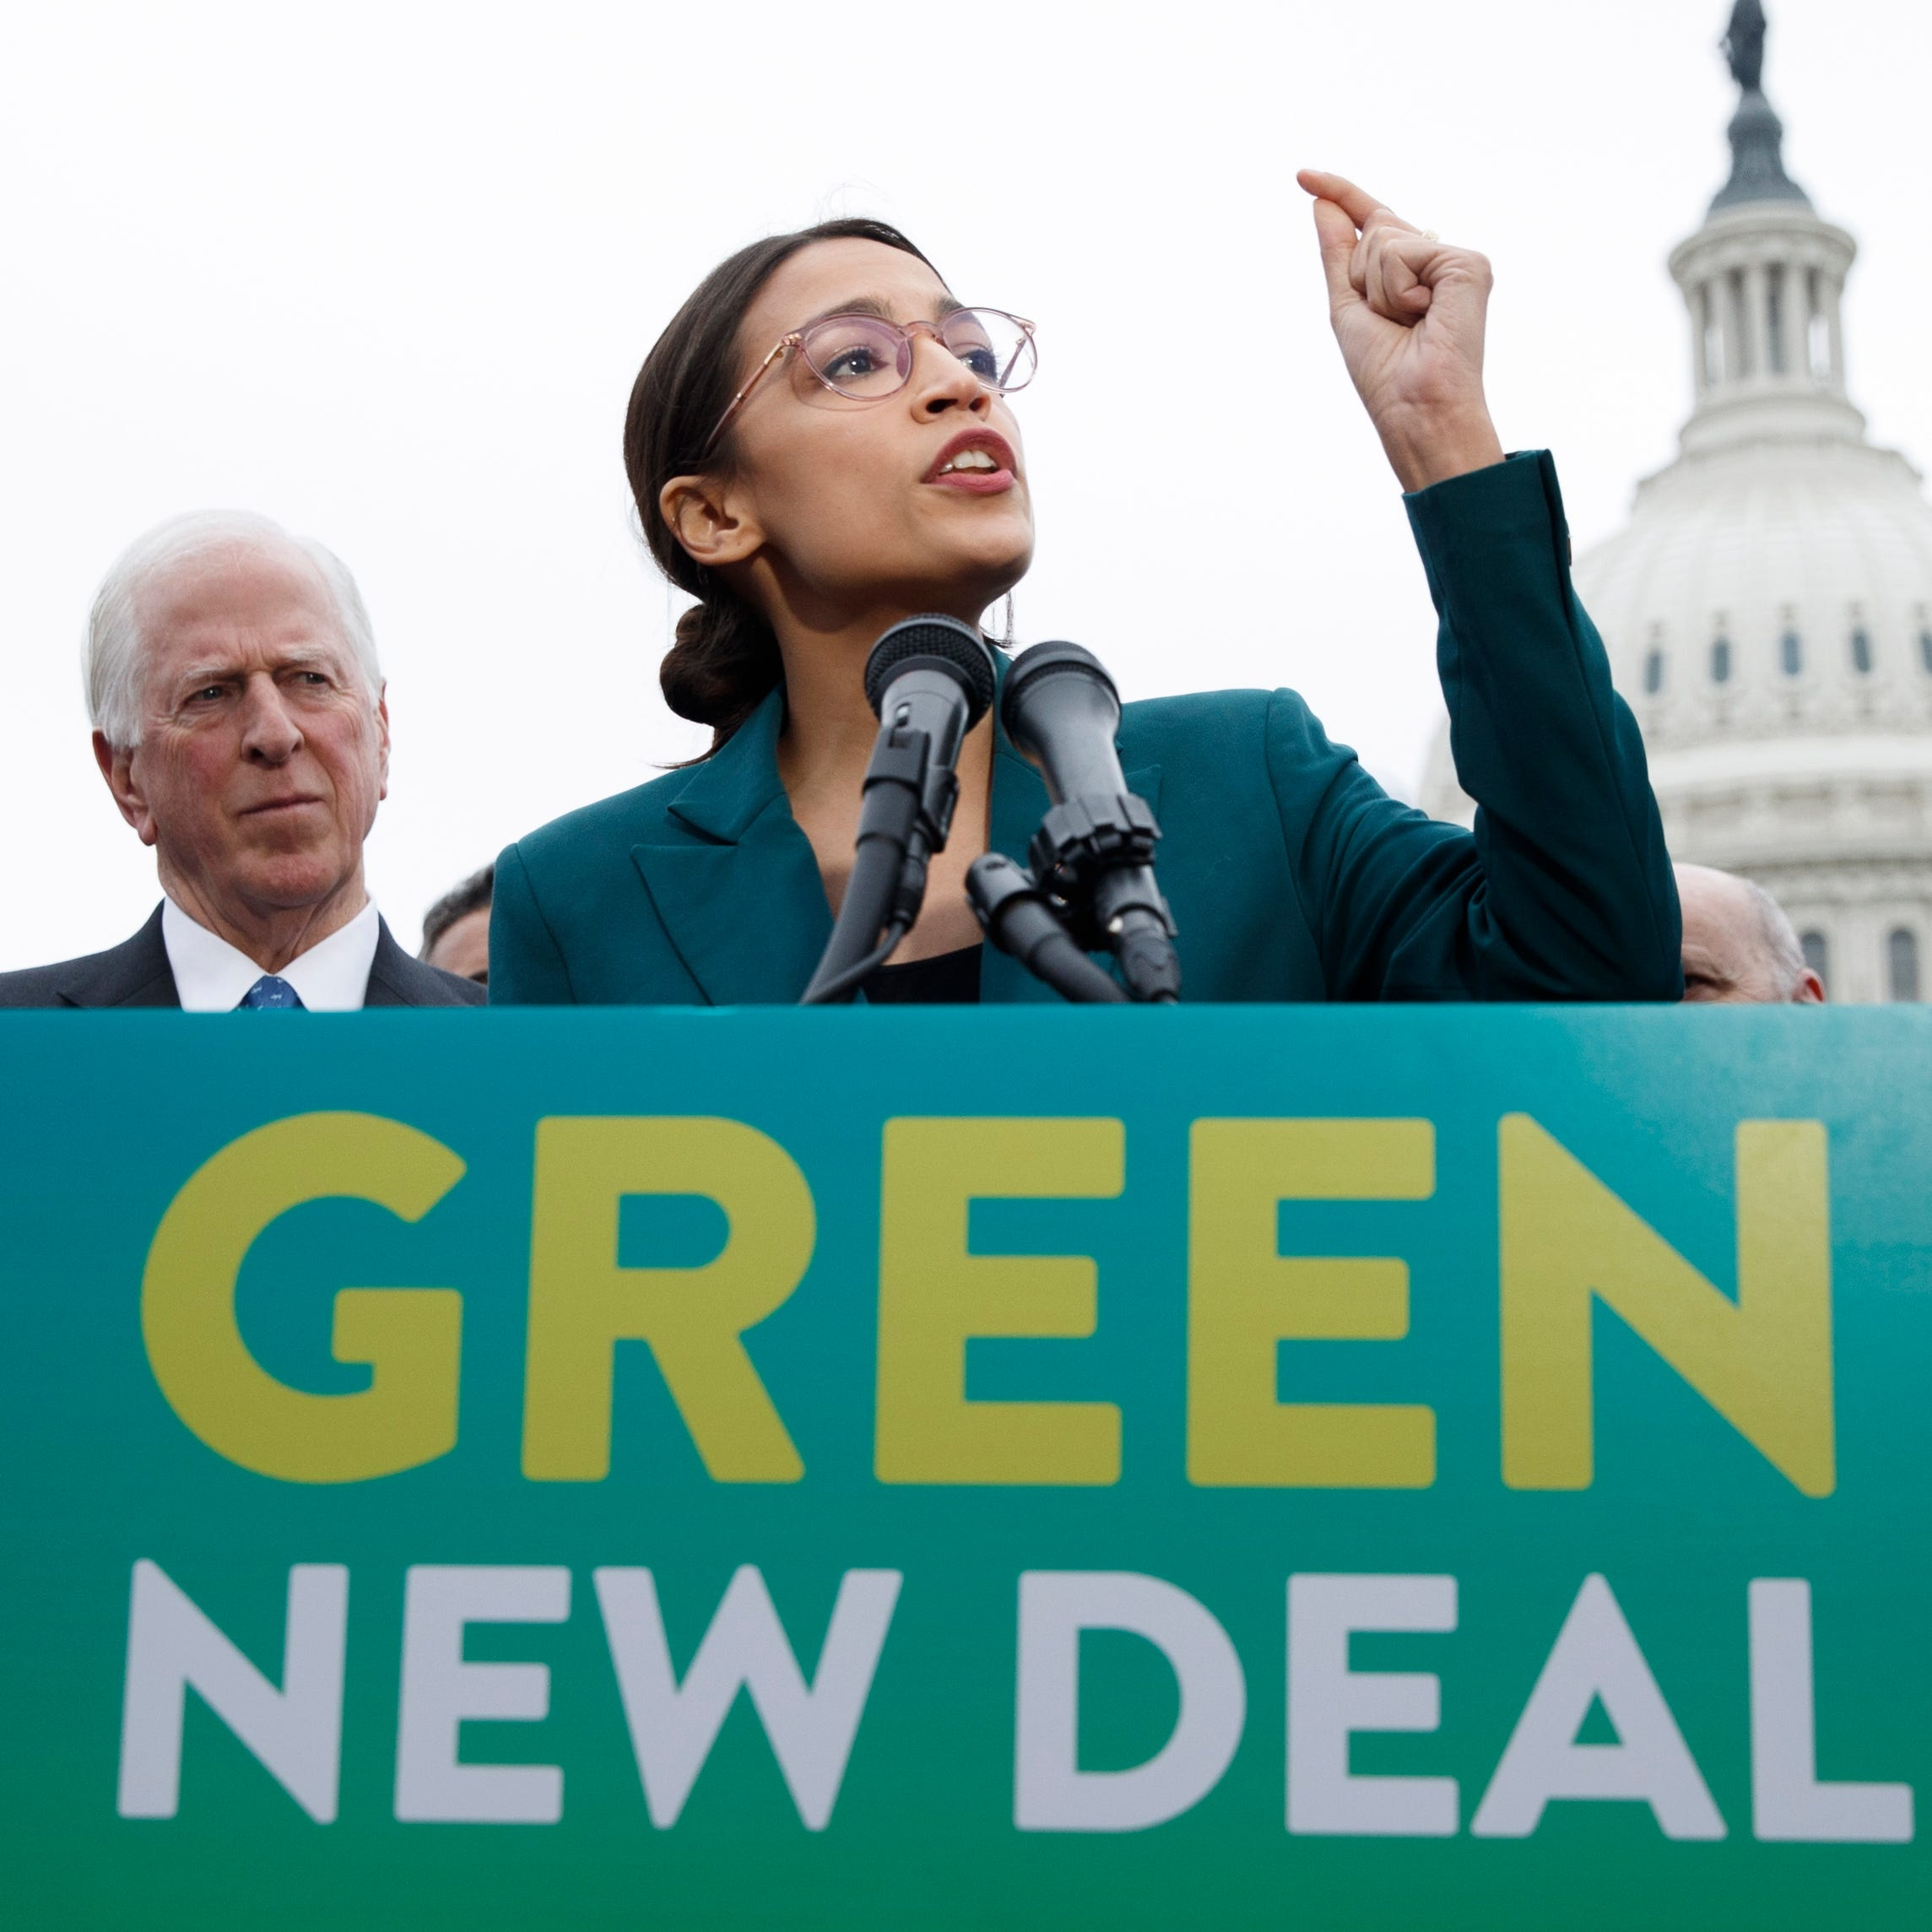 Amazon blow up shows Alexandria Ocasio-Cortez is an economic illiterate